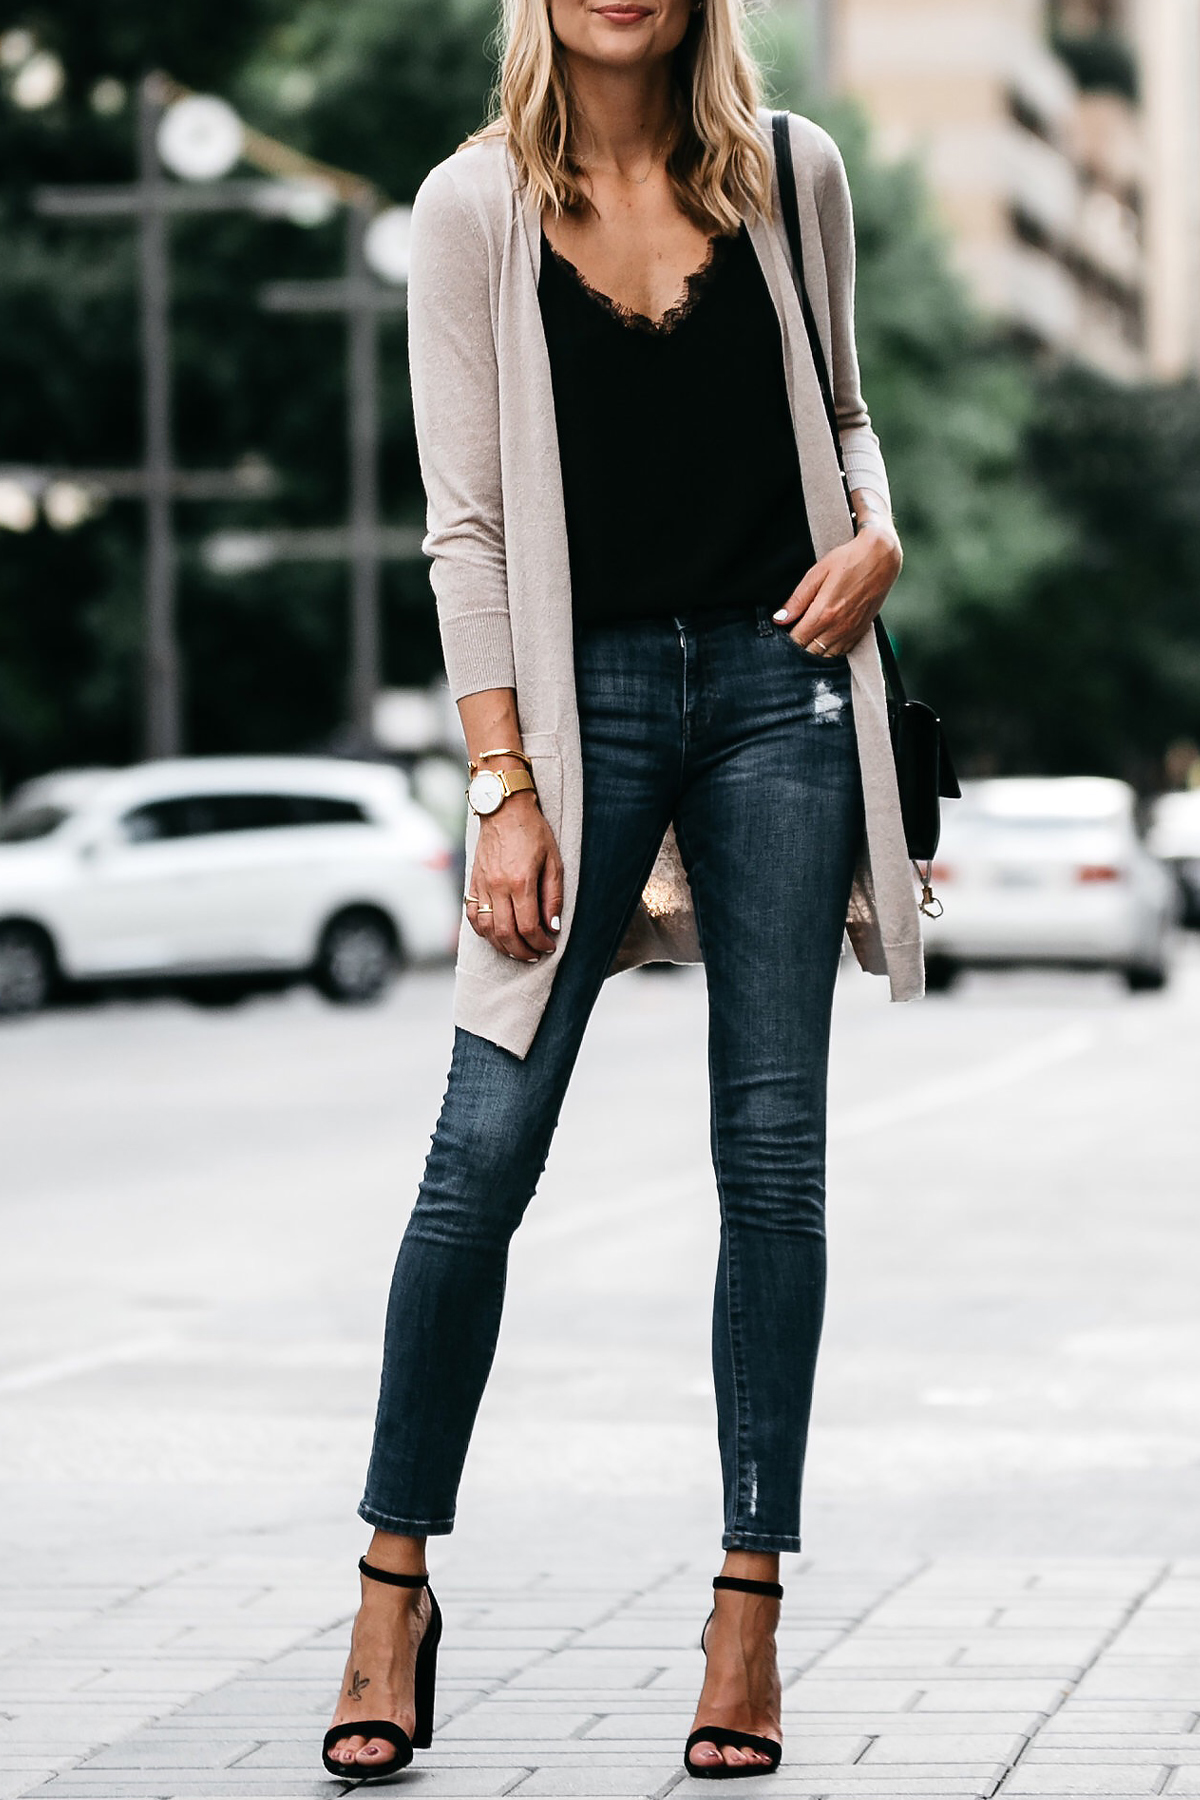 Long Tan Cardigan Black Lace Cami Denim Skinny Jeans Outfit Black Ankle Strap Heeled Sandals Fashion Jackson Dallas Blogger Fashion Blogger